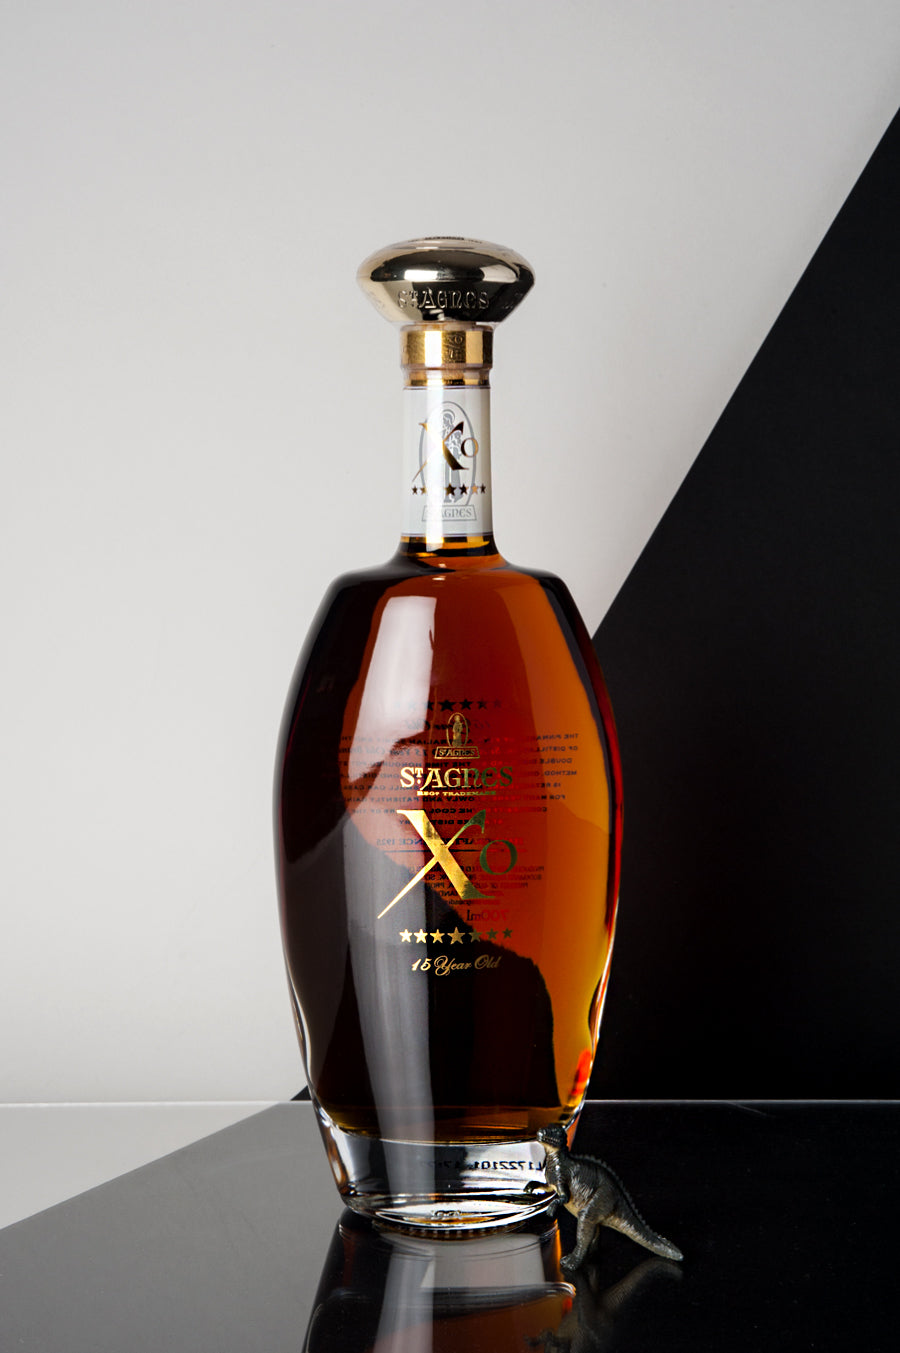 St Agnes XO 15 Years Old Brandy